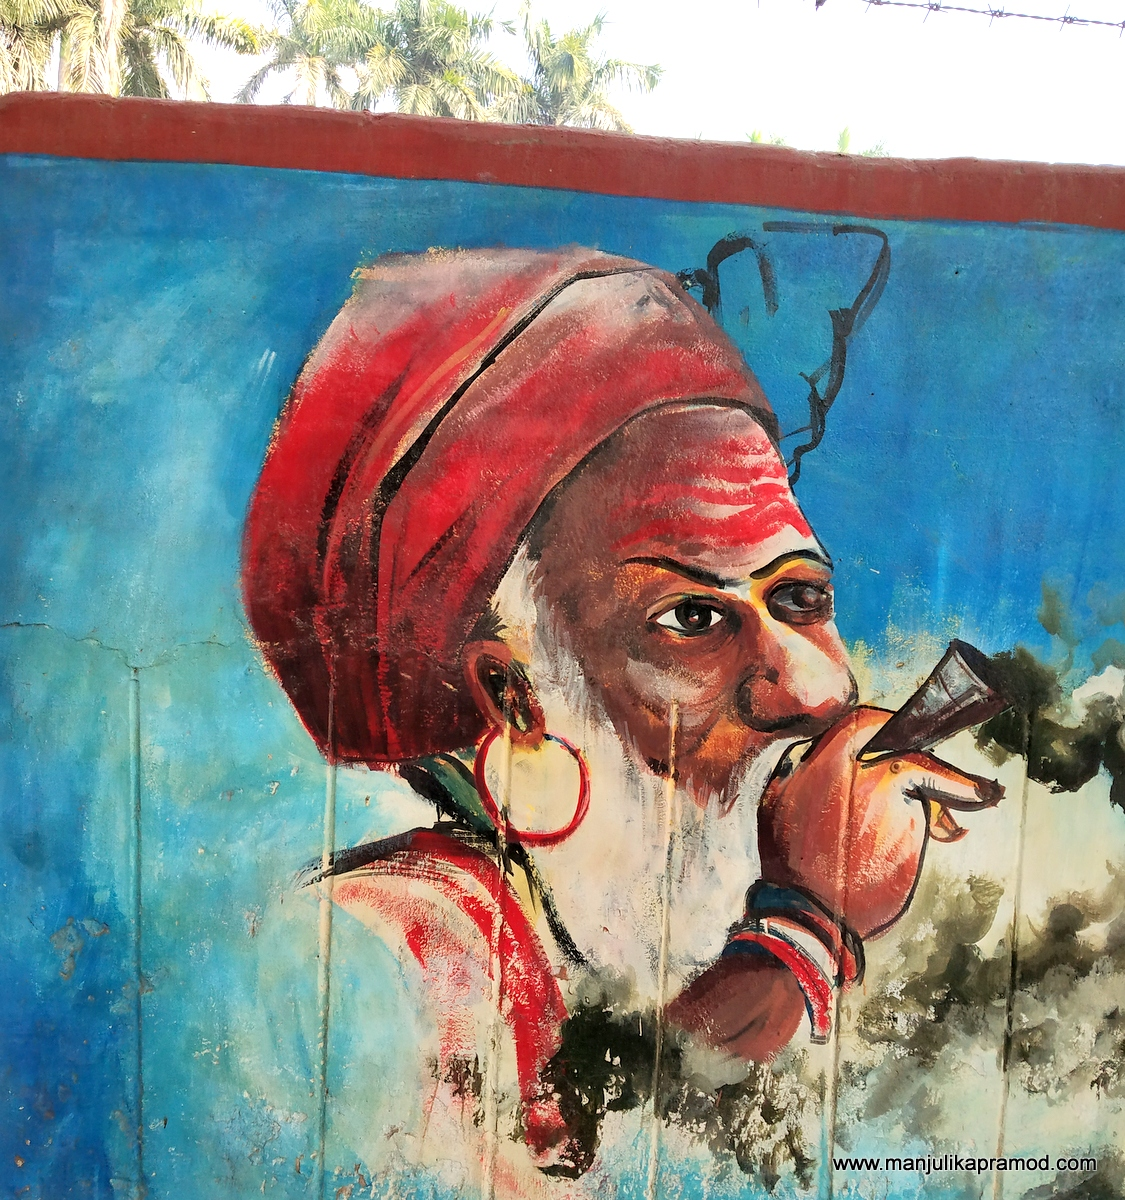 A street art showing a saint in Varanasi.